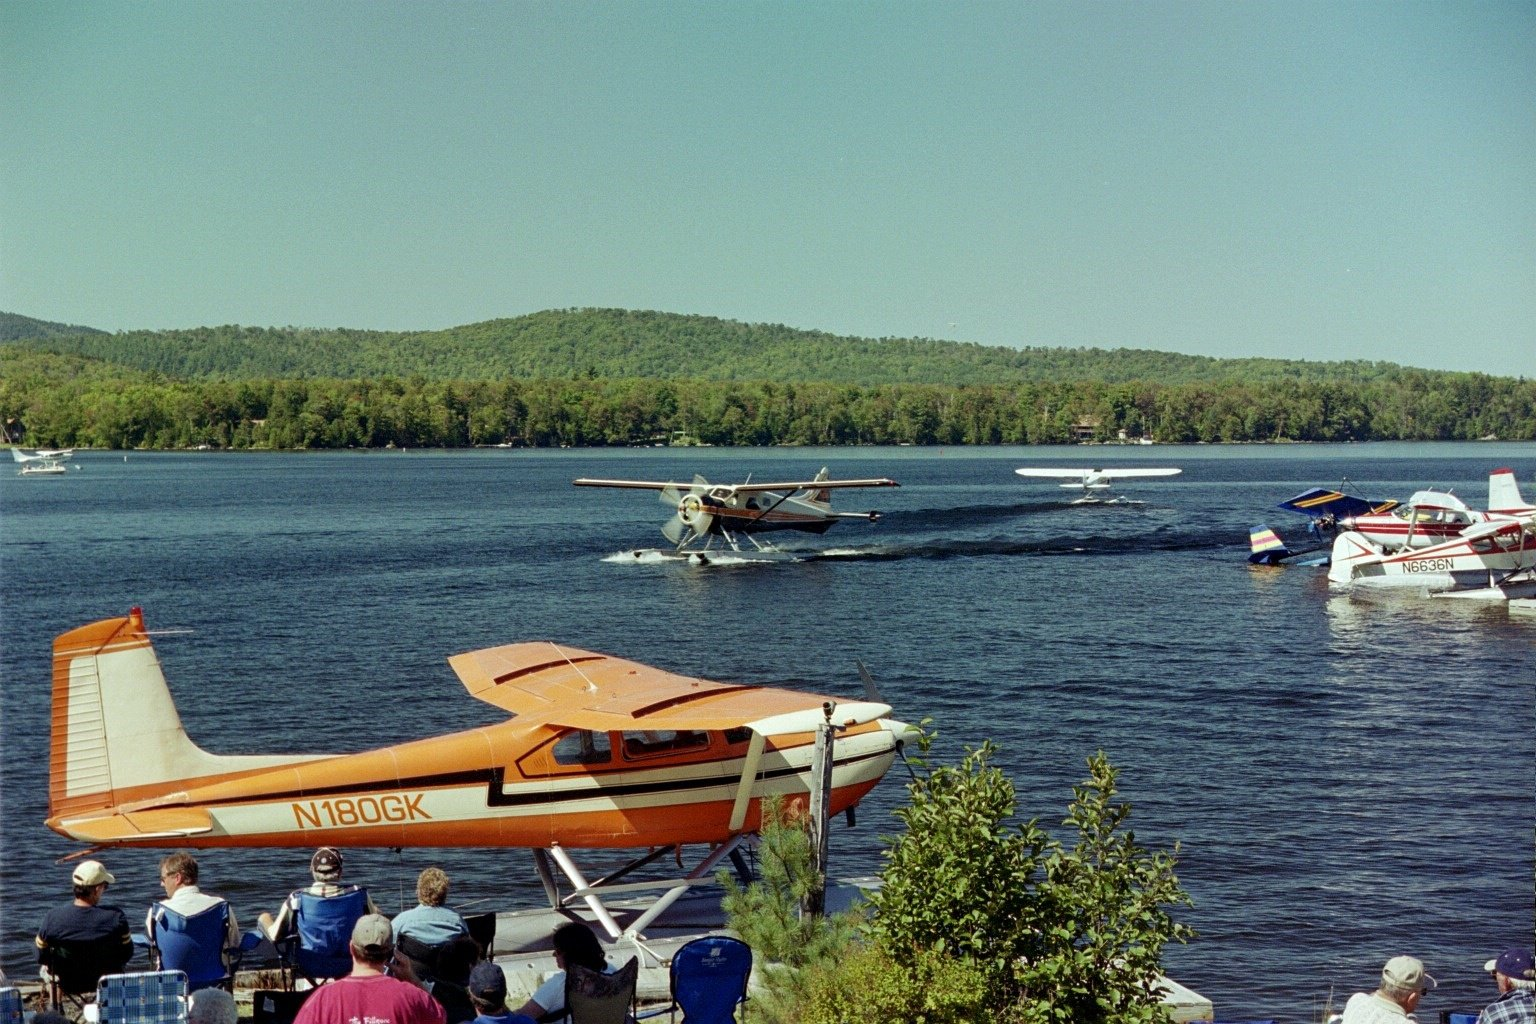 Best way to see Moosehead Lake is by seaplane